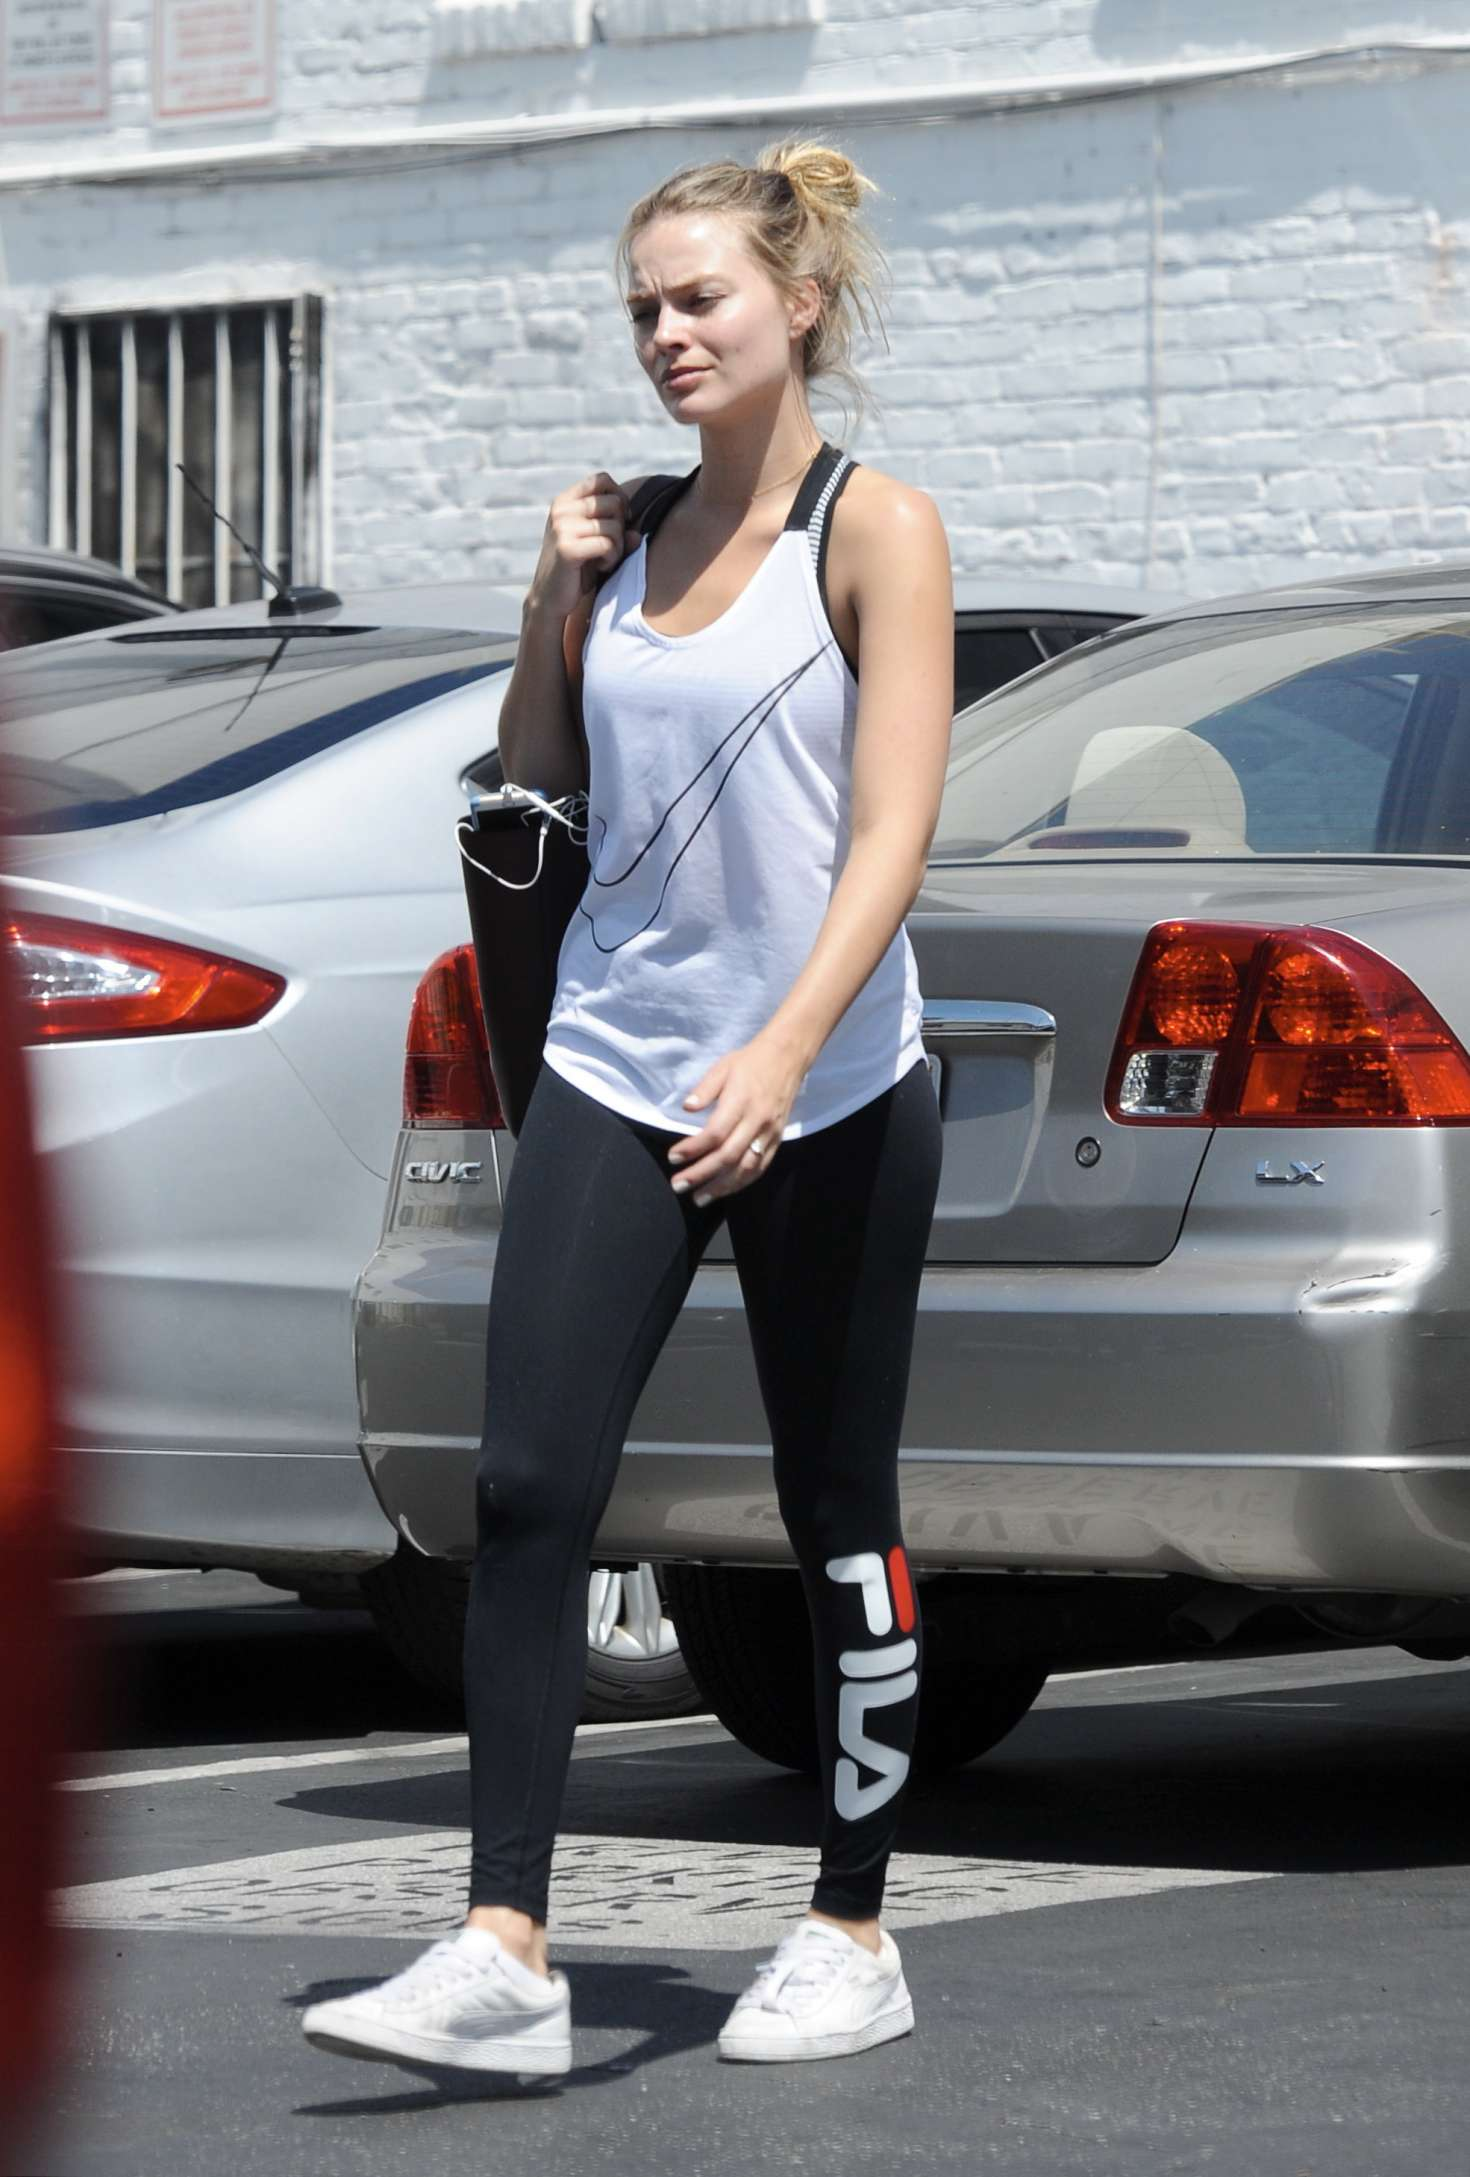 Margot Robbie No Makeup In A Gym